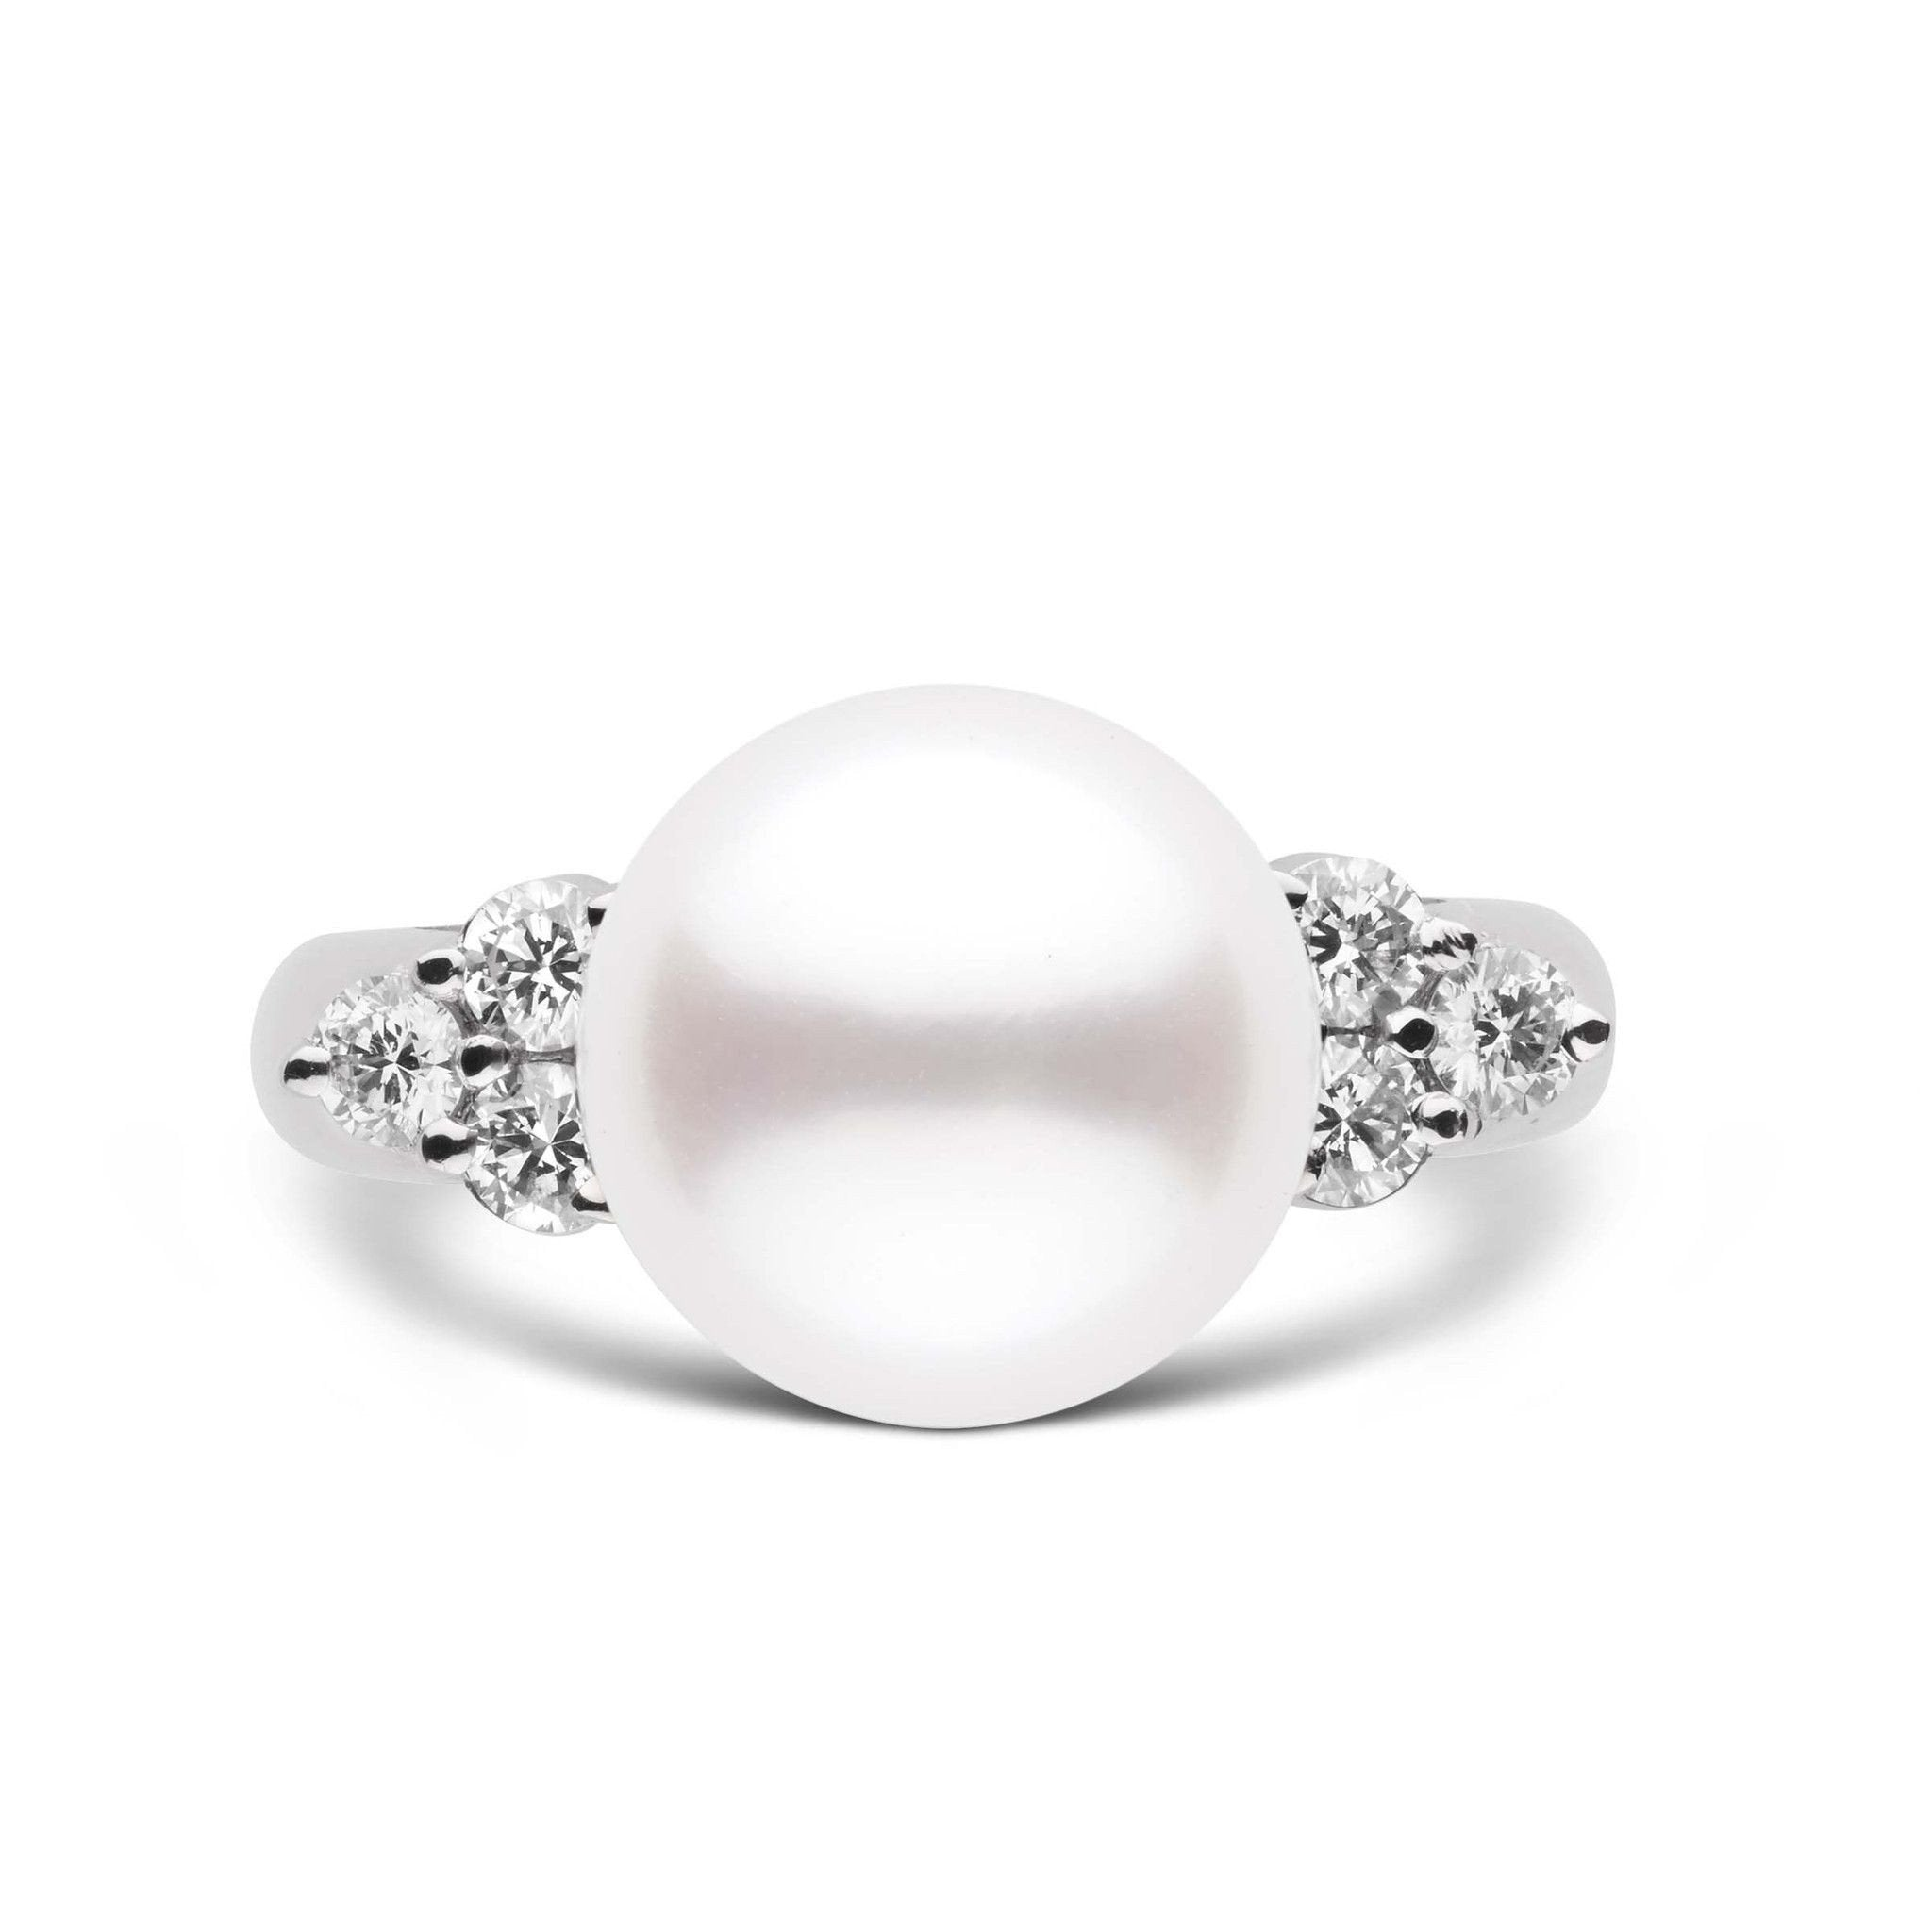 Always Collection White 10.0-11.0 mm South Sea Pearl Ring 18K